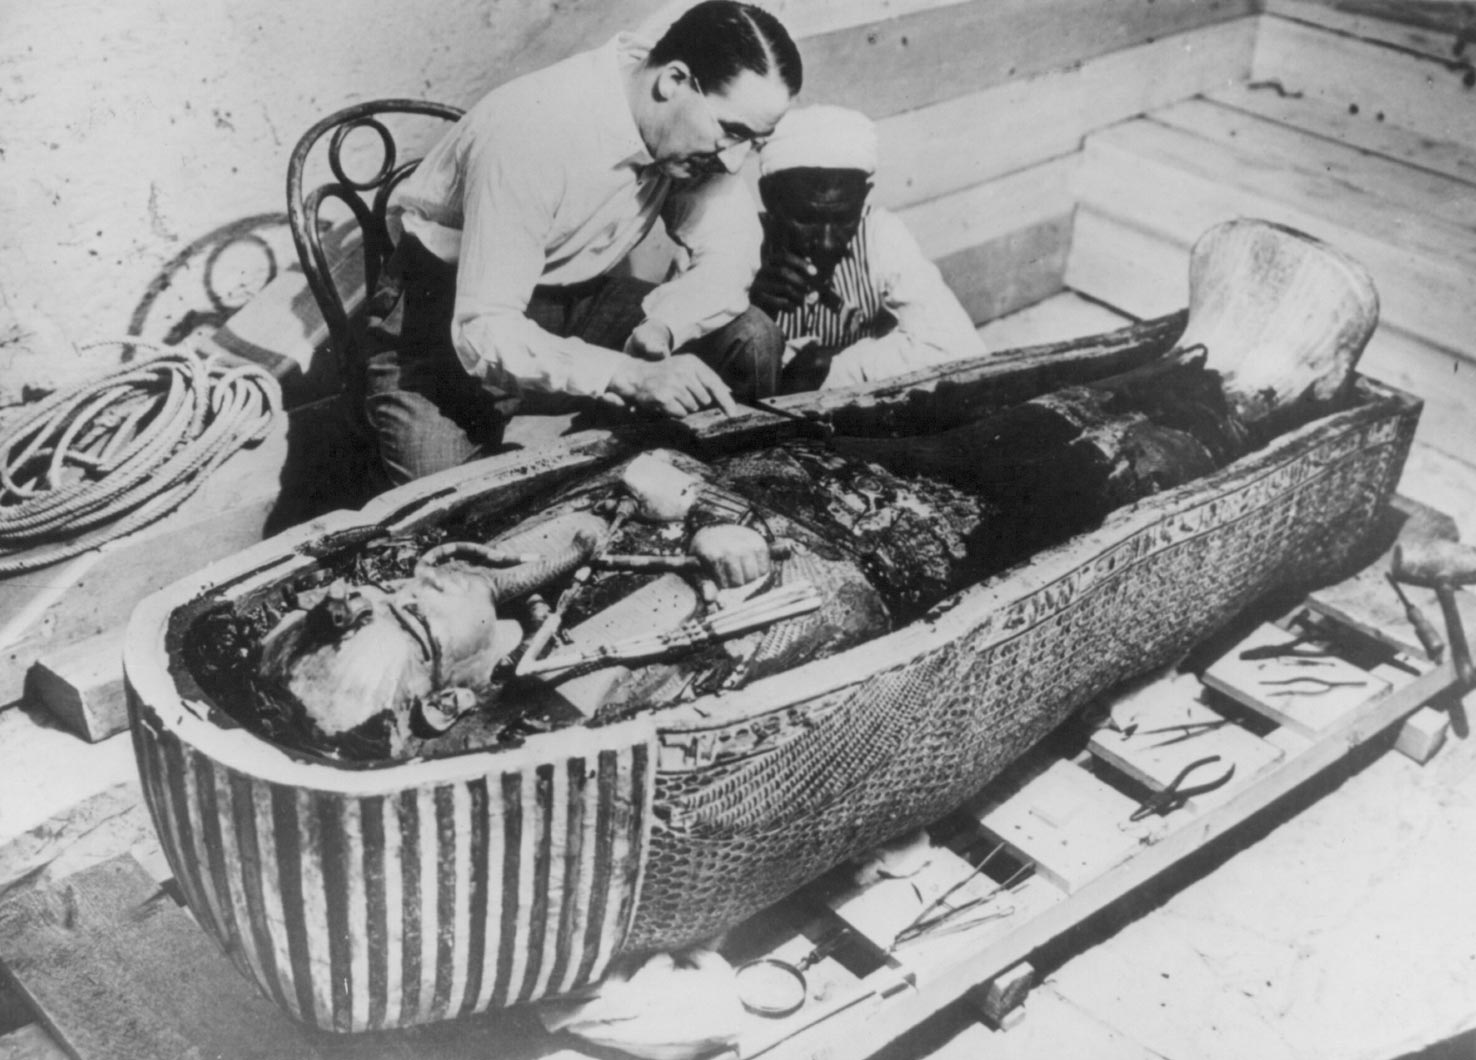 Howard Carter works on King Tutankhamen's mummy